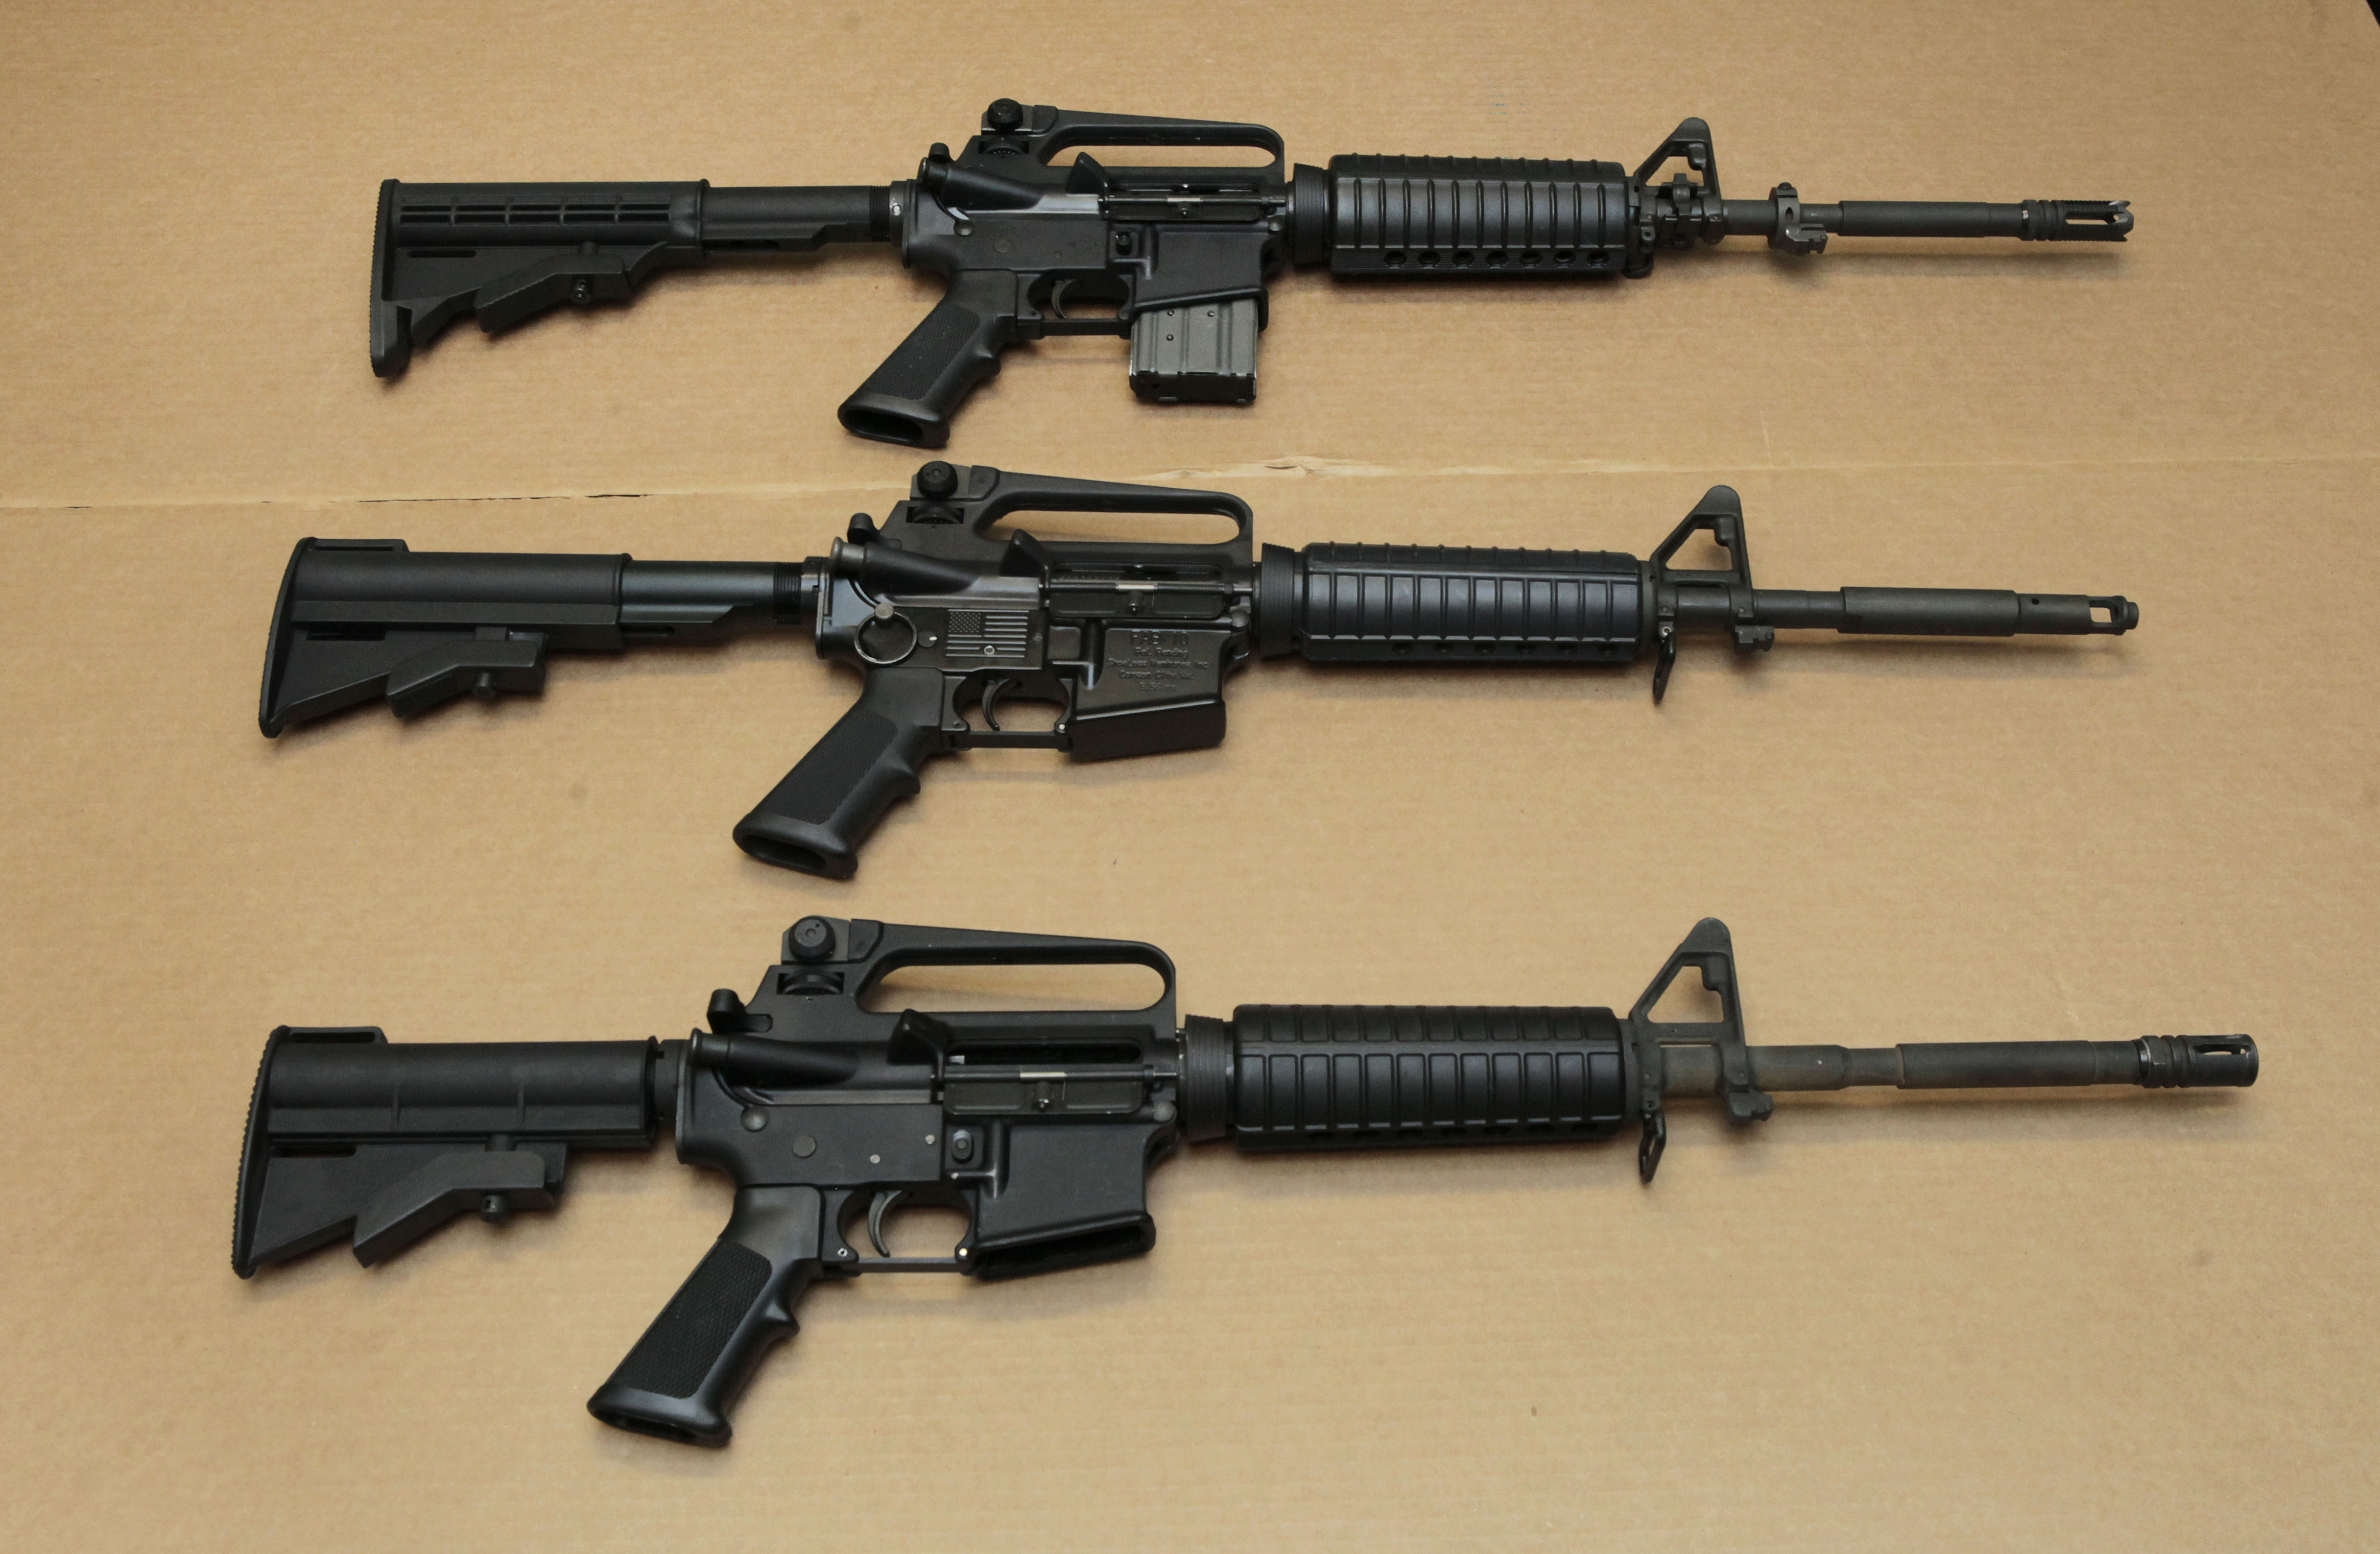 Why shouldn't gun education be allowed in high schools?